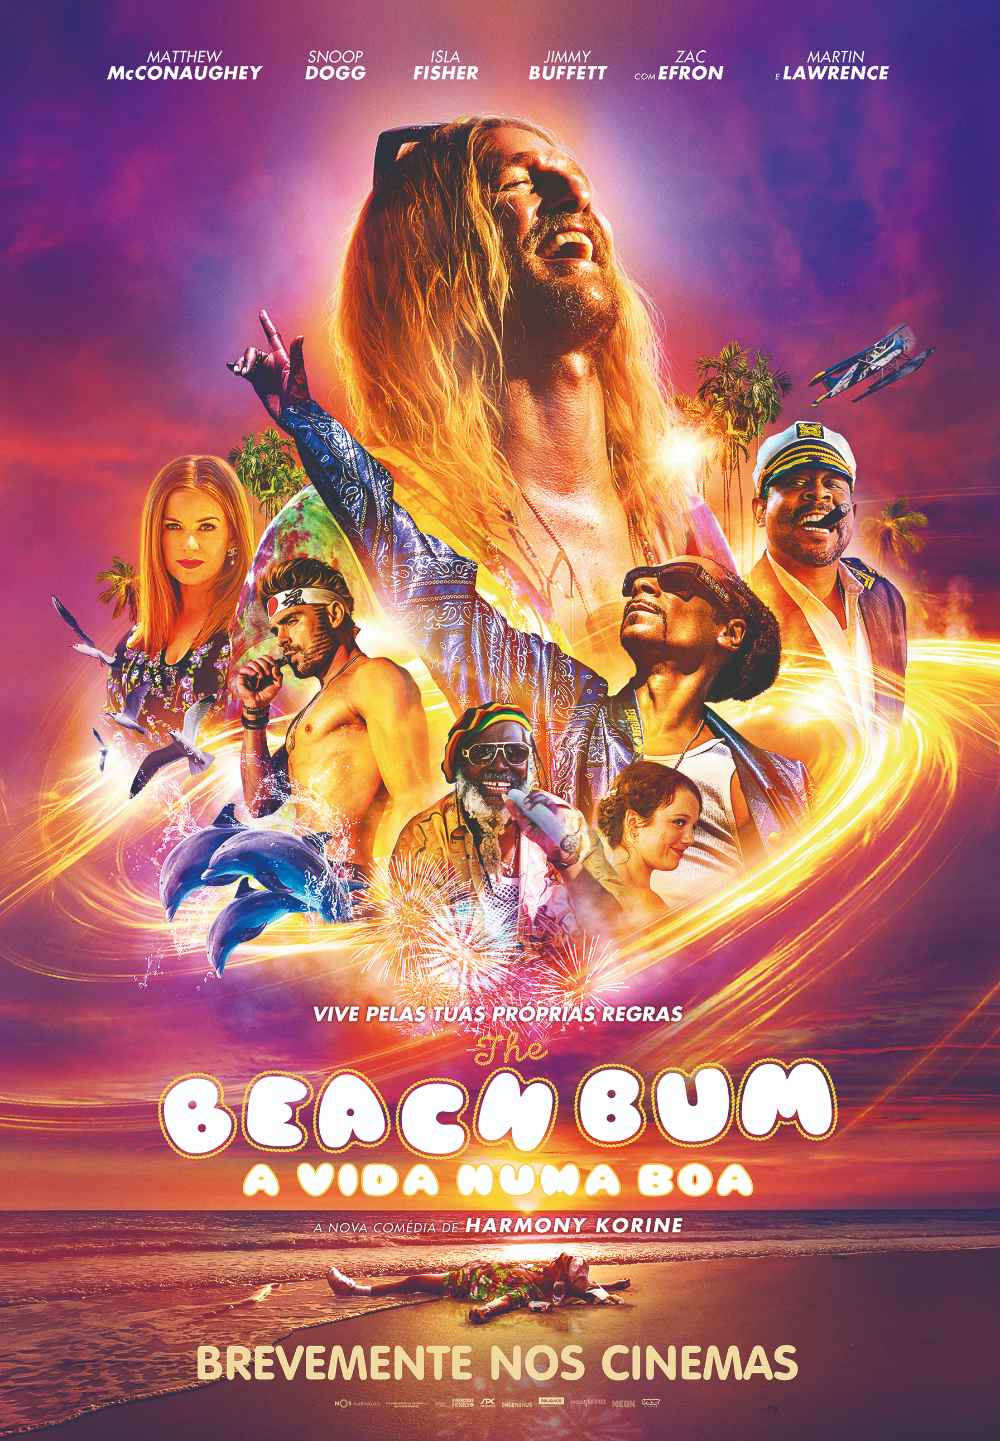 The Beach Bum: A Vida Numa Boa